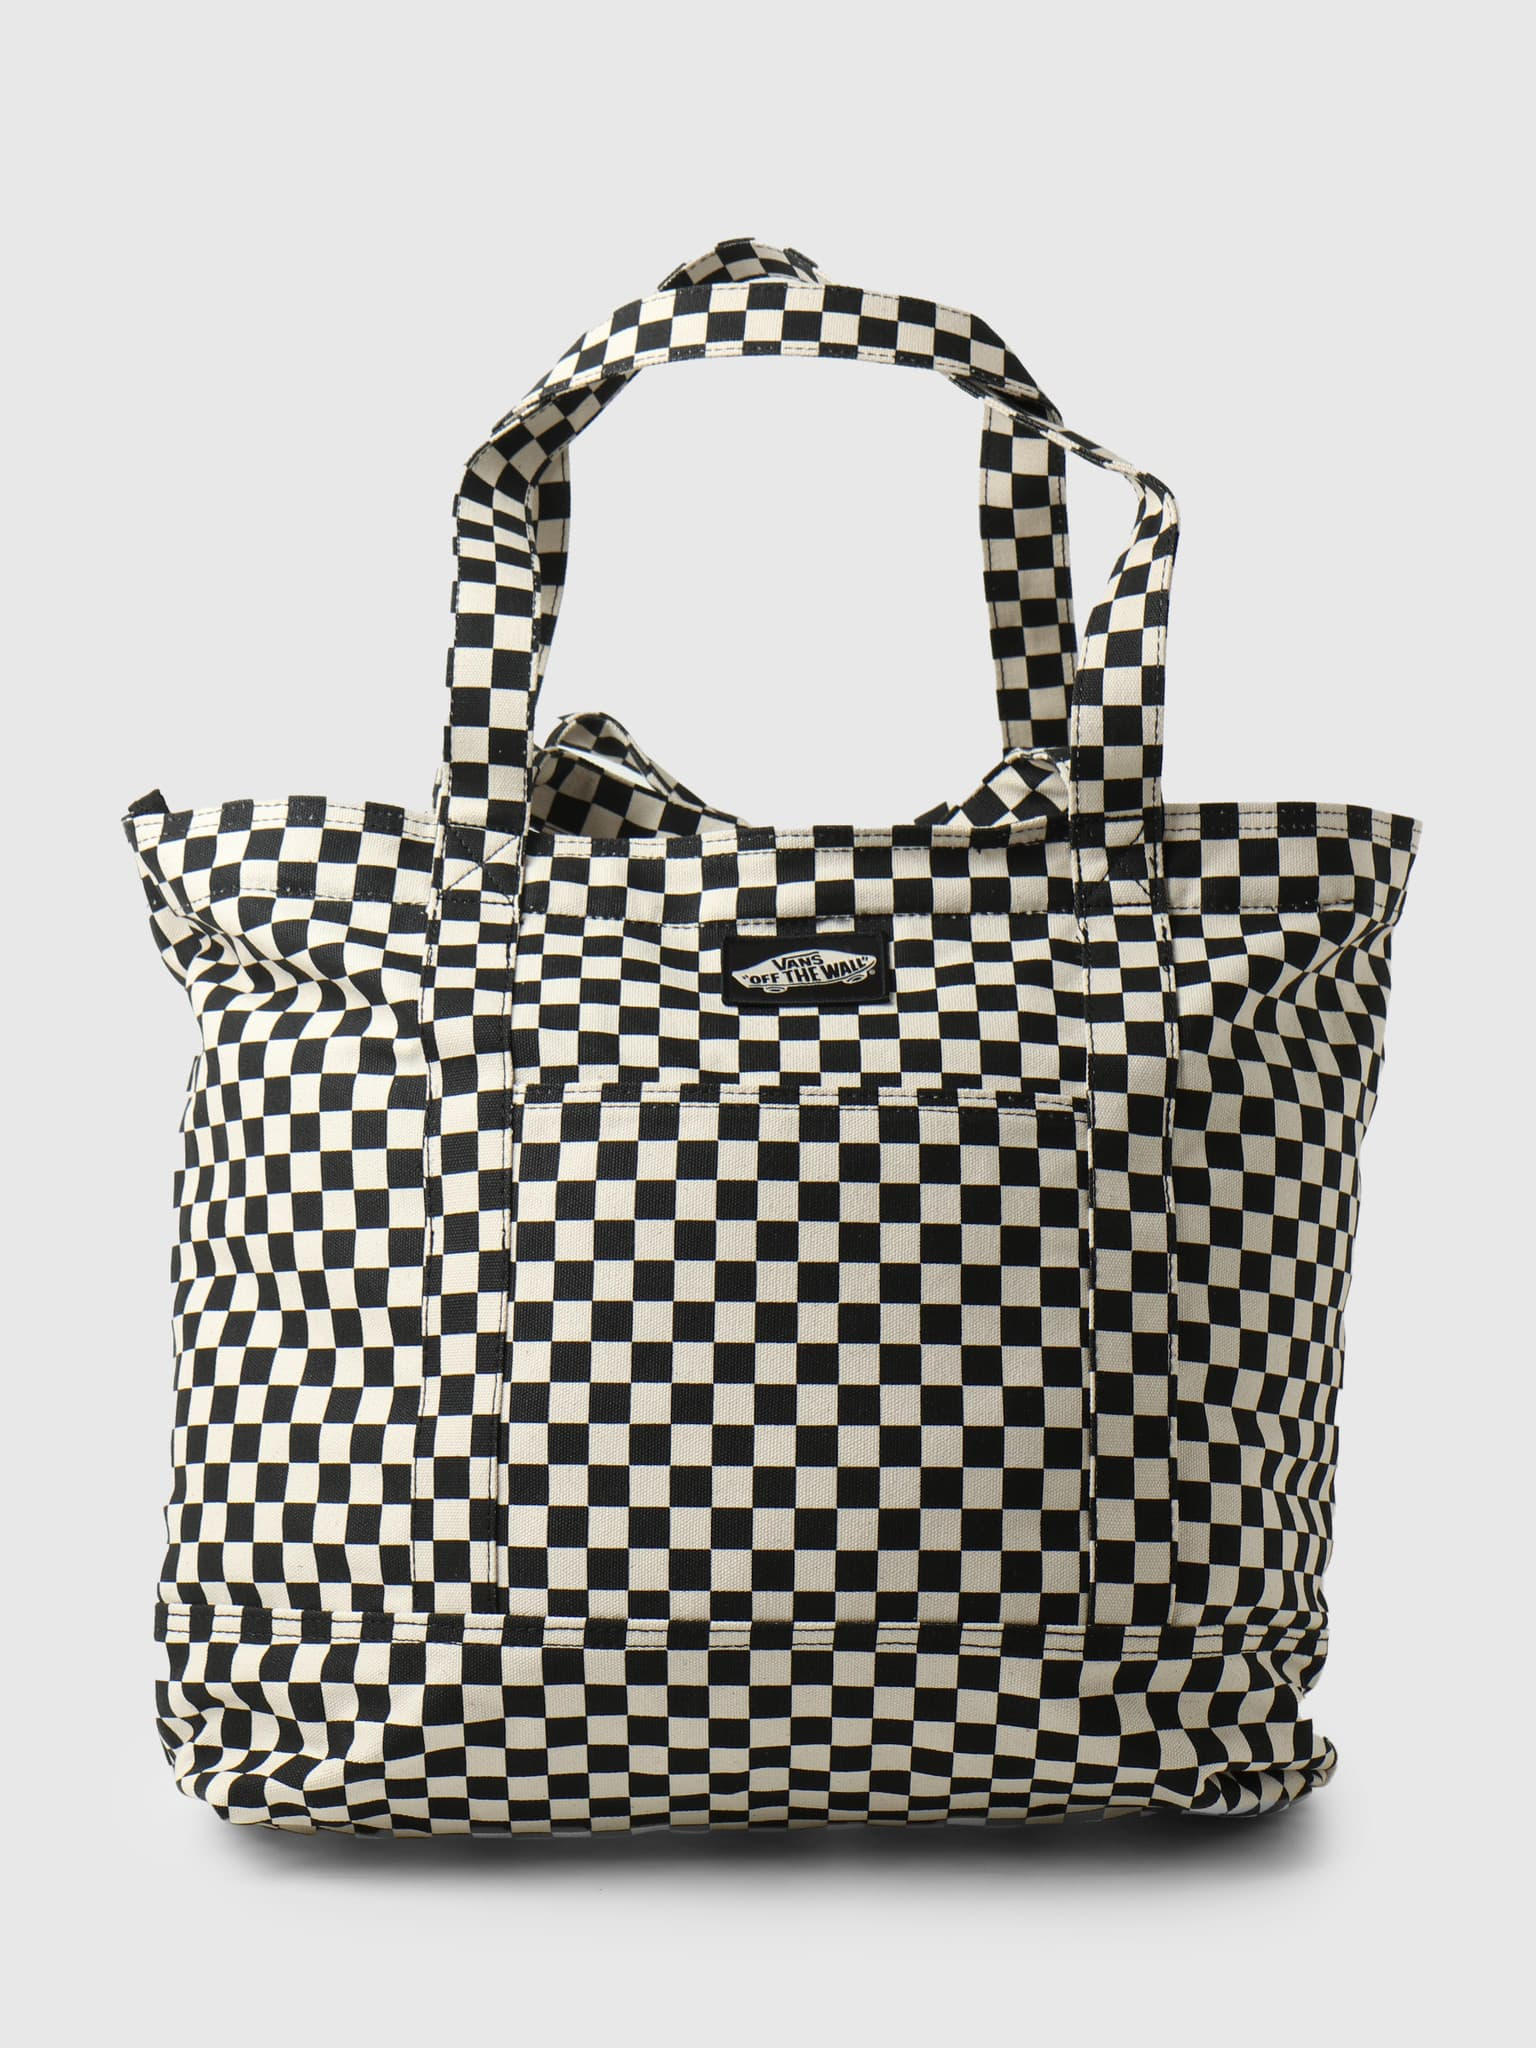 Wm Tell All Zip Tote Checkerboard VN0A5I1K7051